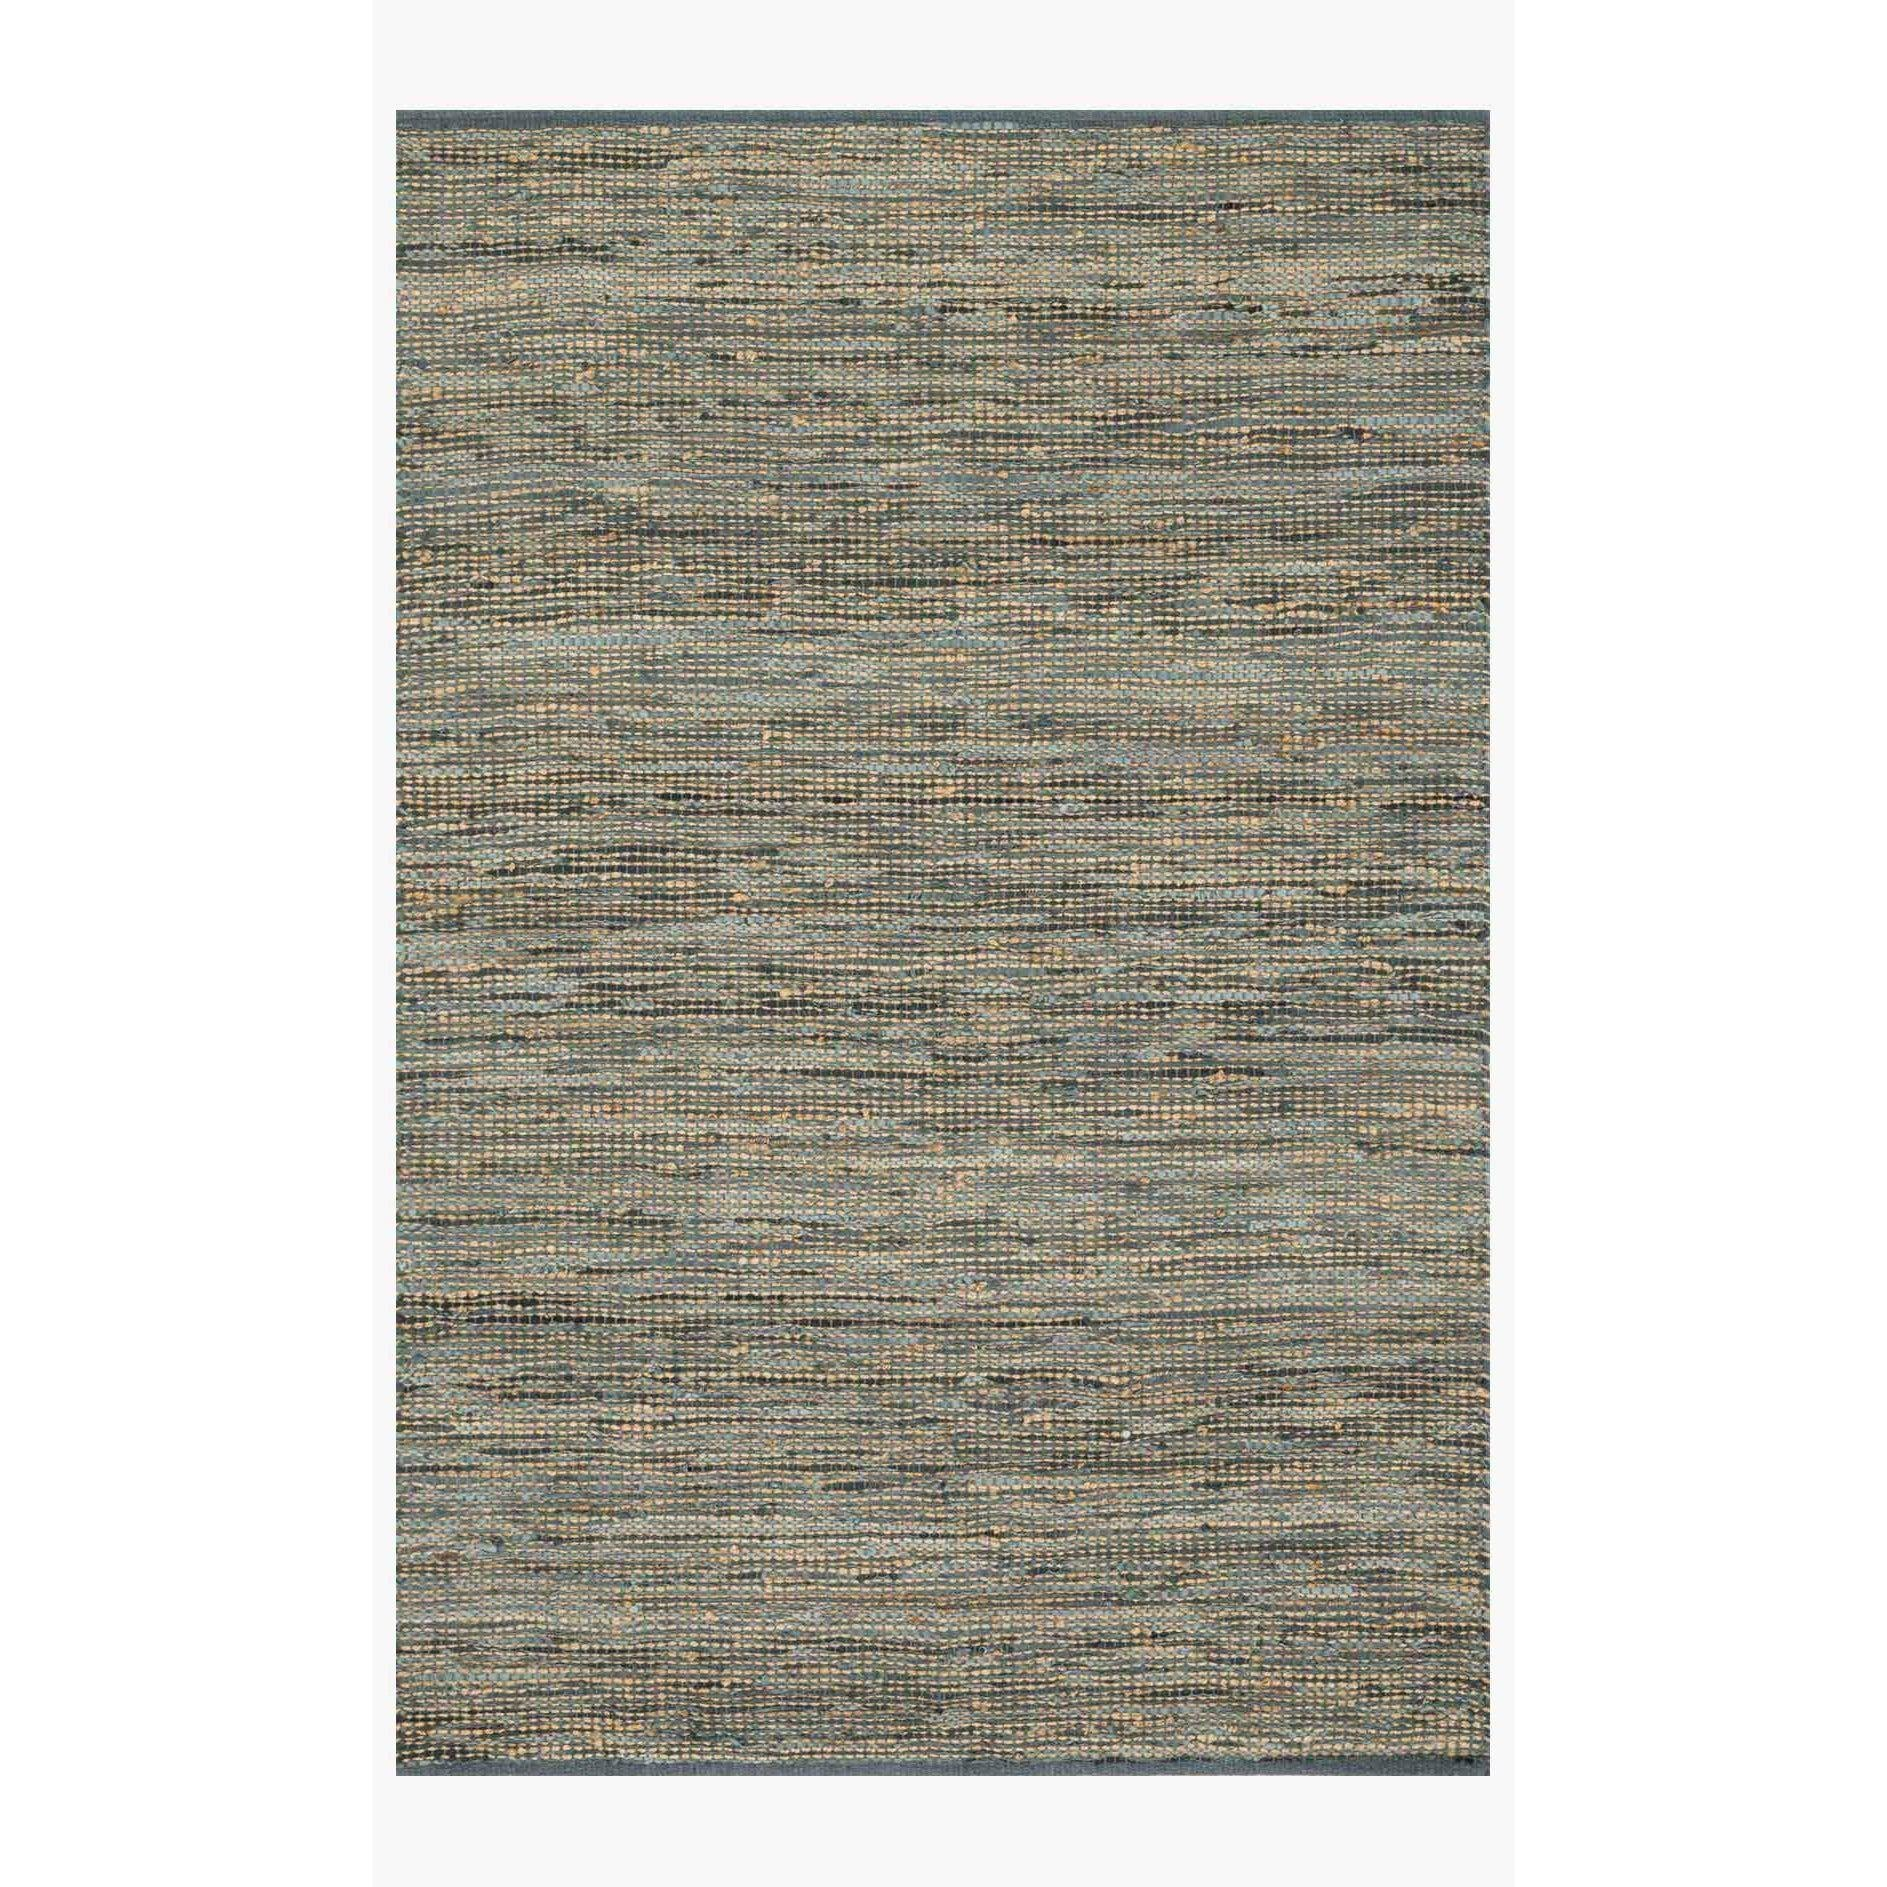 Edge Rug by Loloi Rugs - ED-01 - Grey-Loloi Rugs-Blue Hand Home